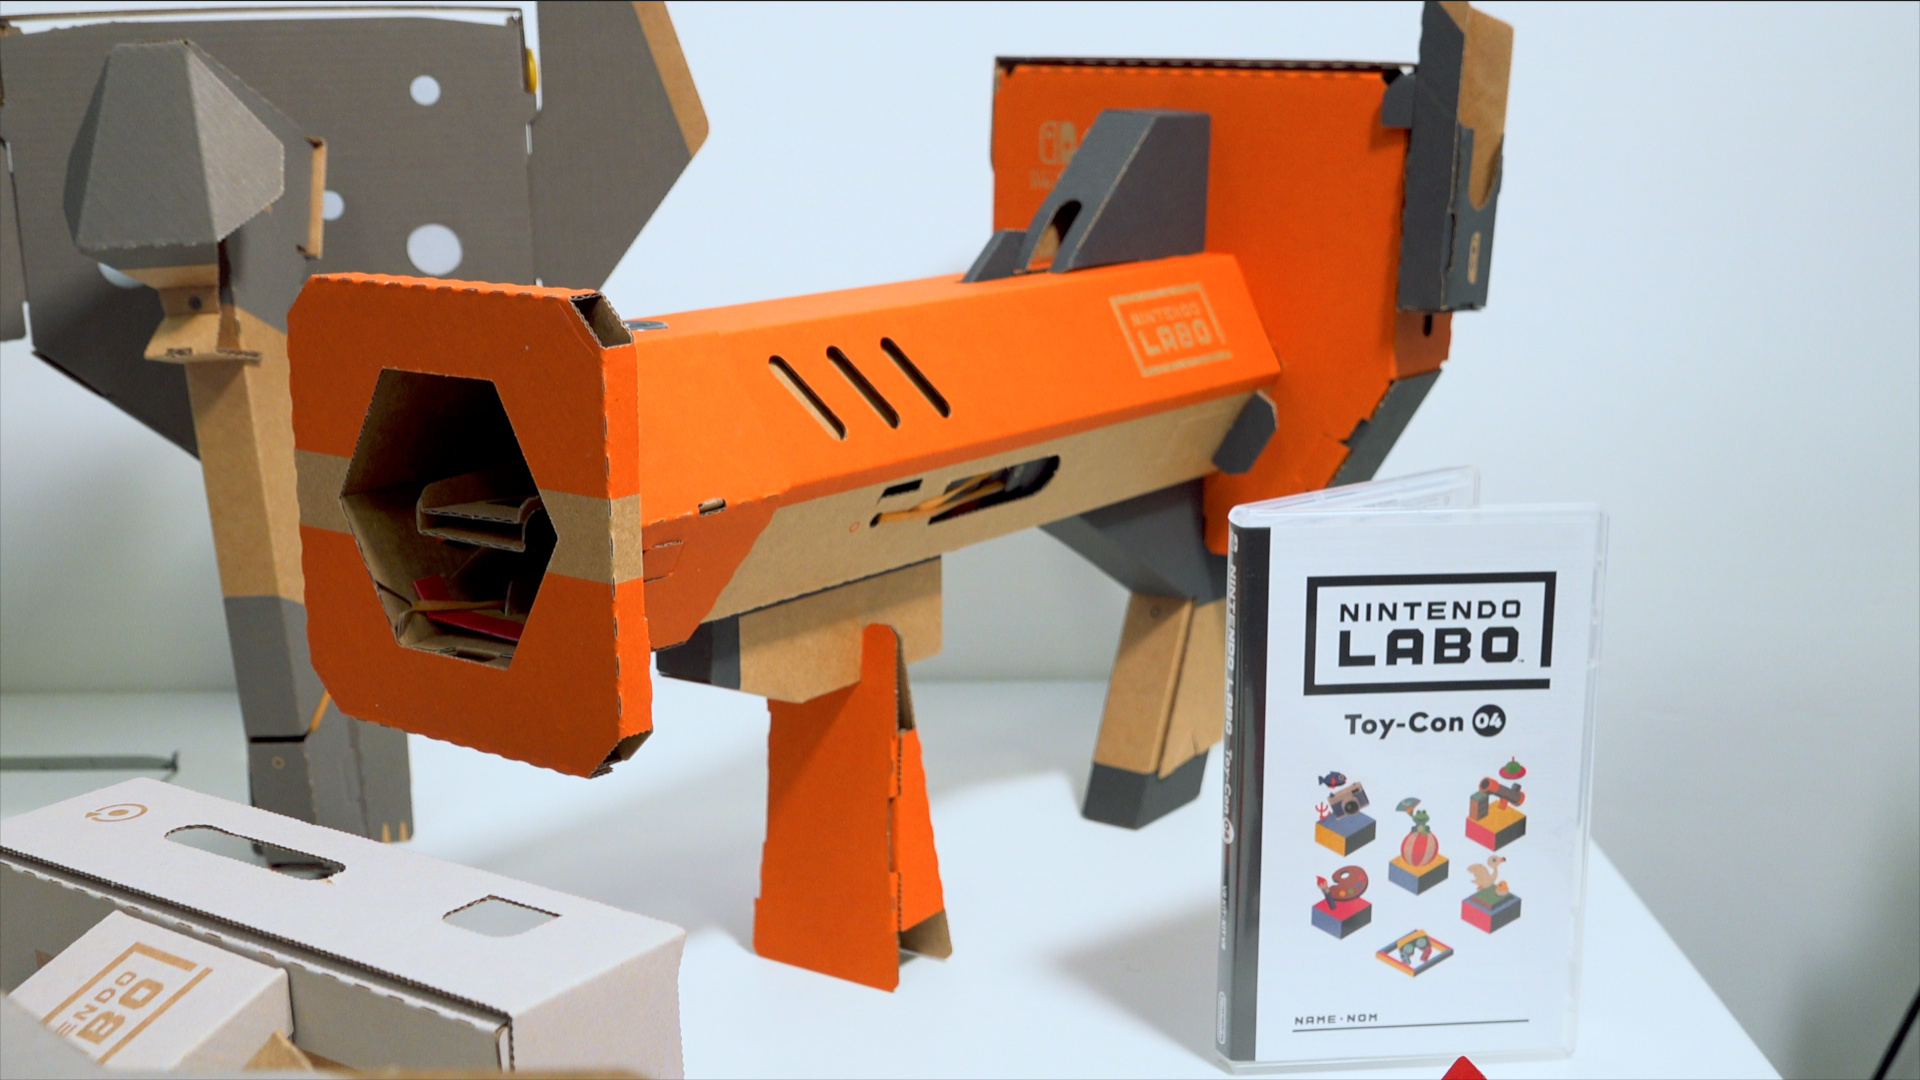 Hands On: There's More To Nintendo's Labo VR Than Meets The